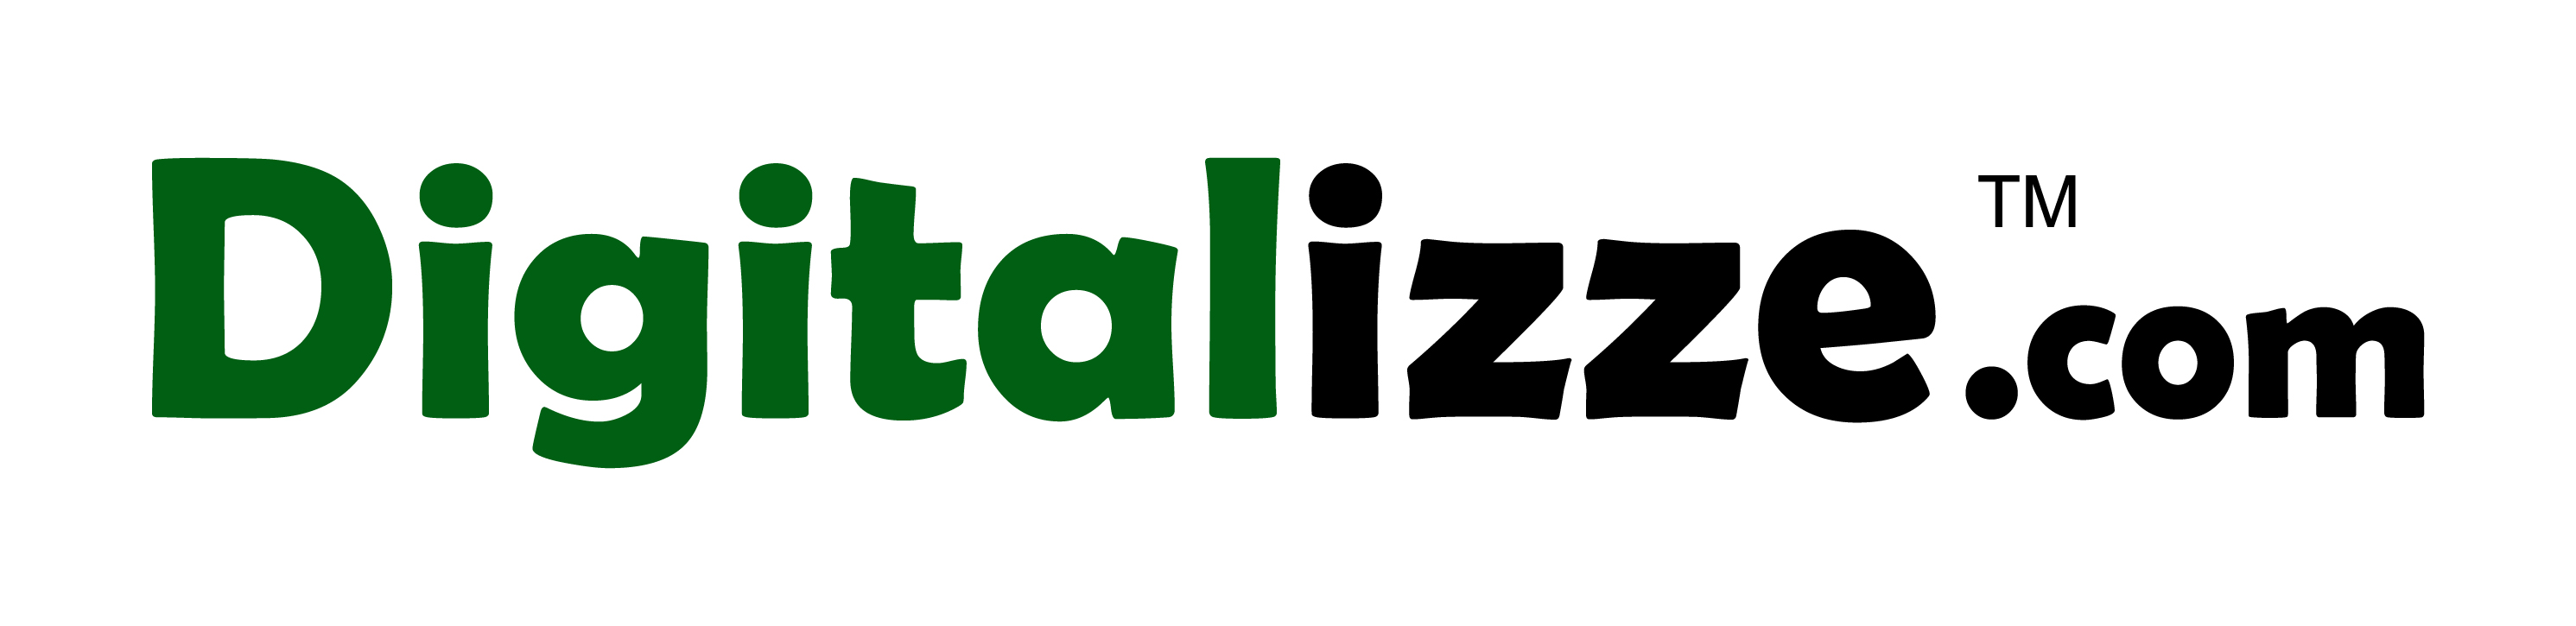 Digitalizze - Digital Advertising, Marketing, and other Services